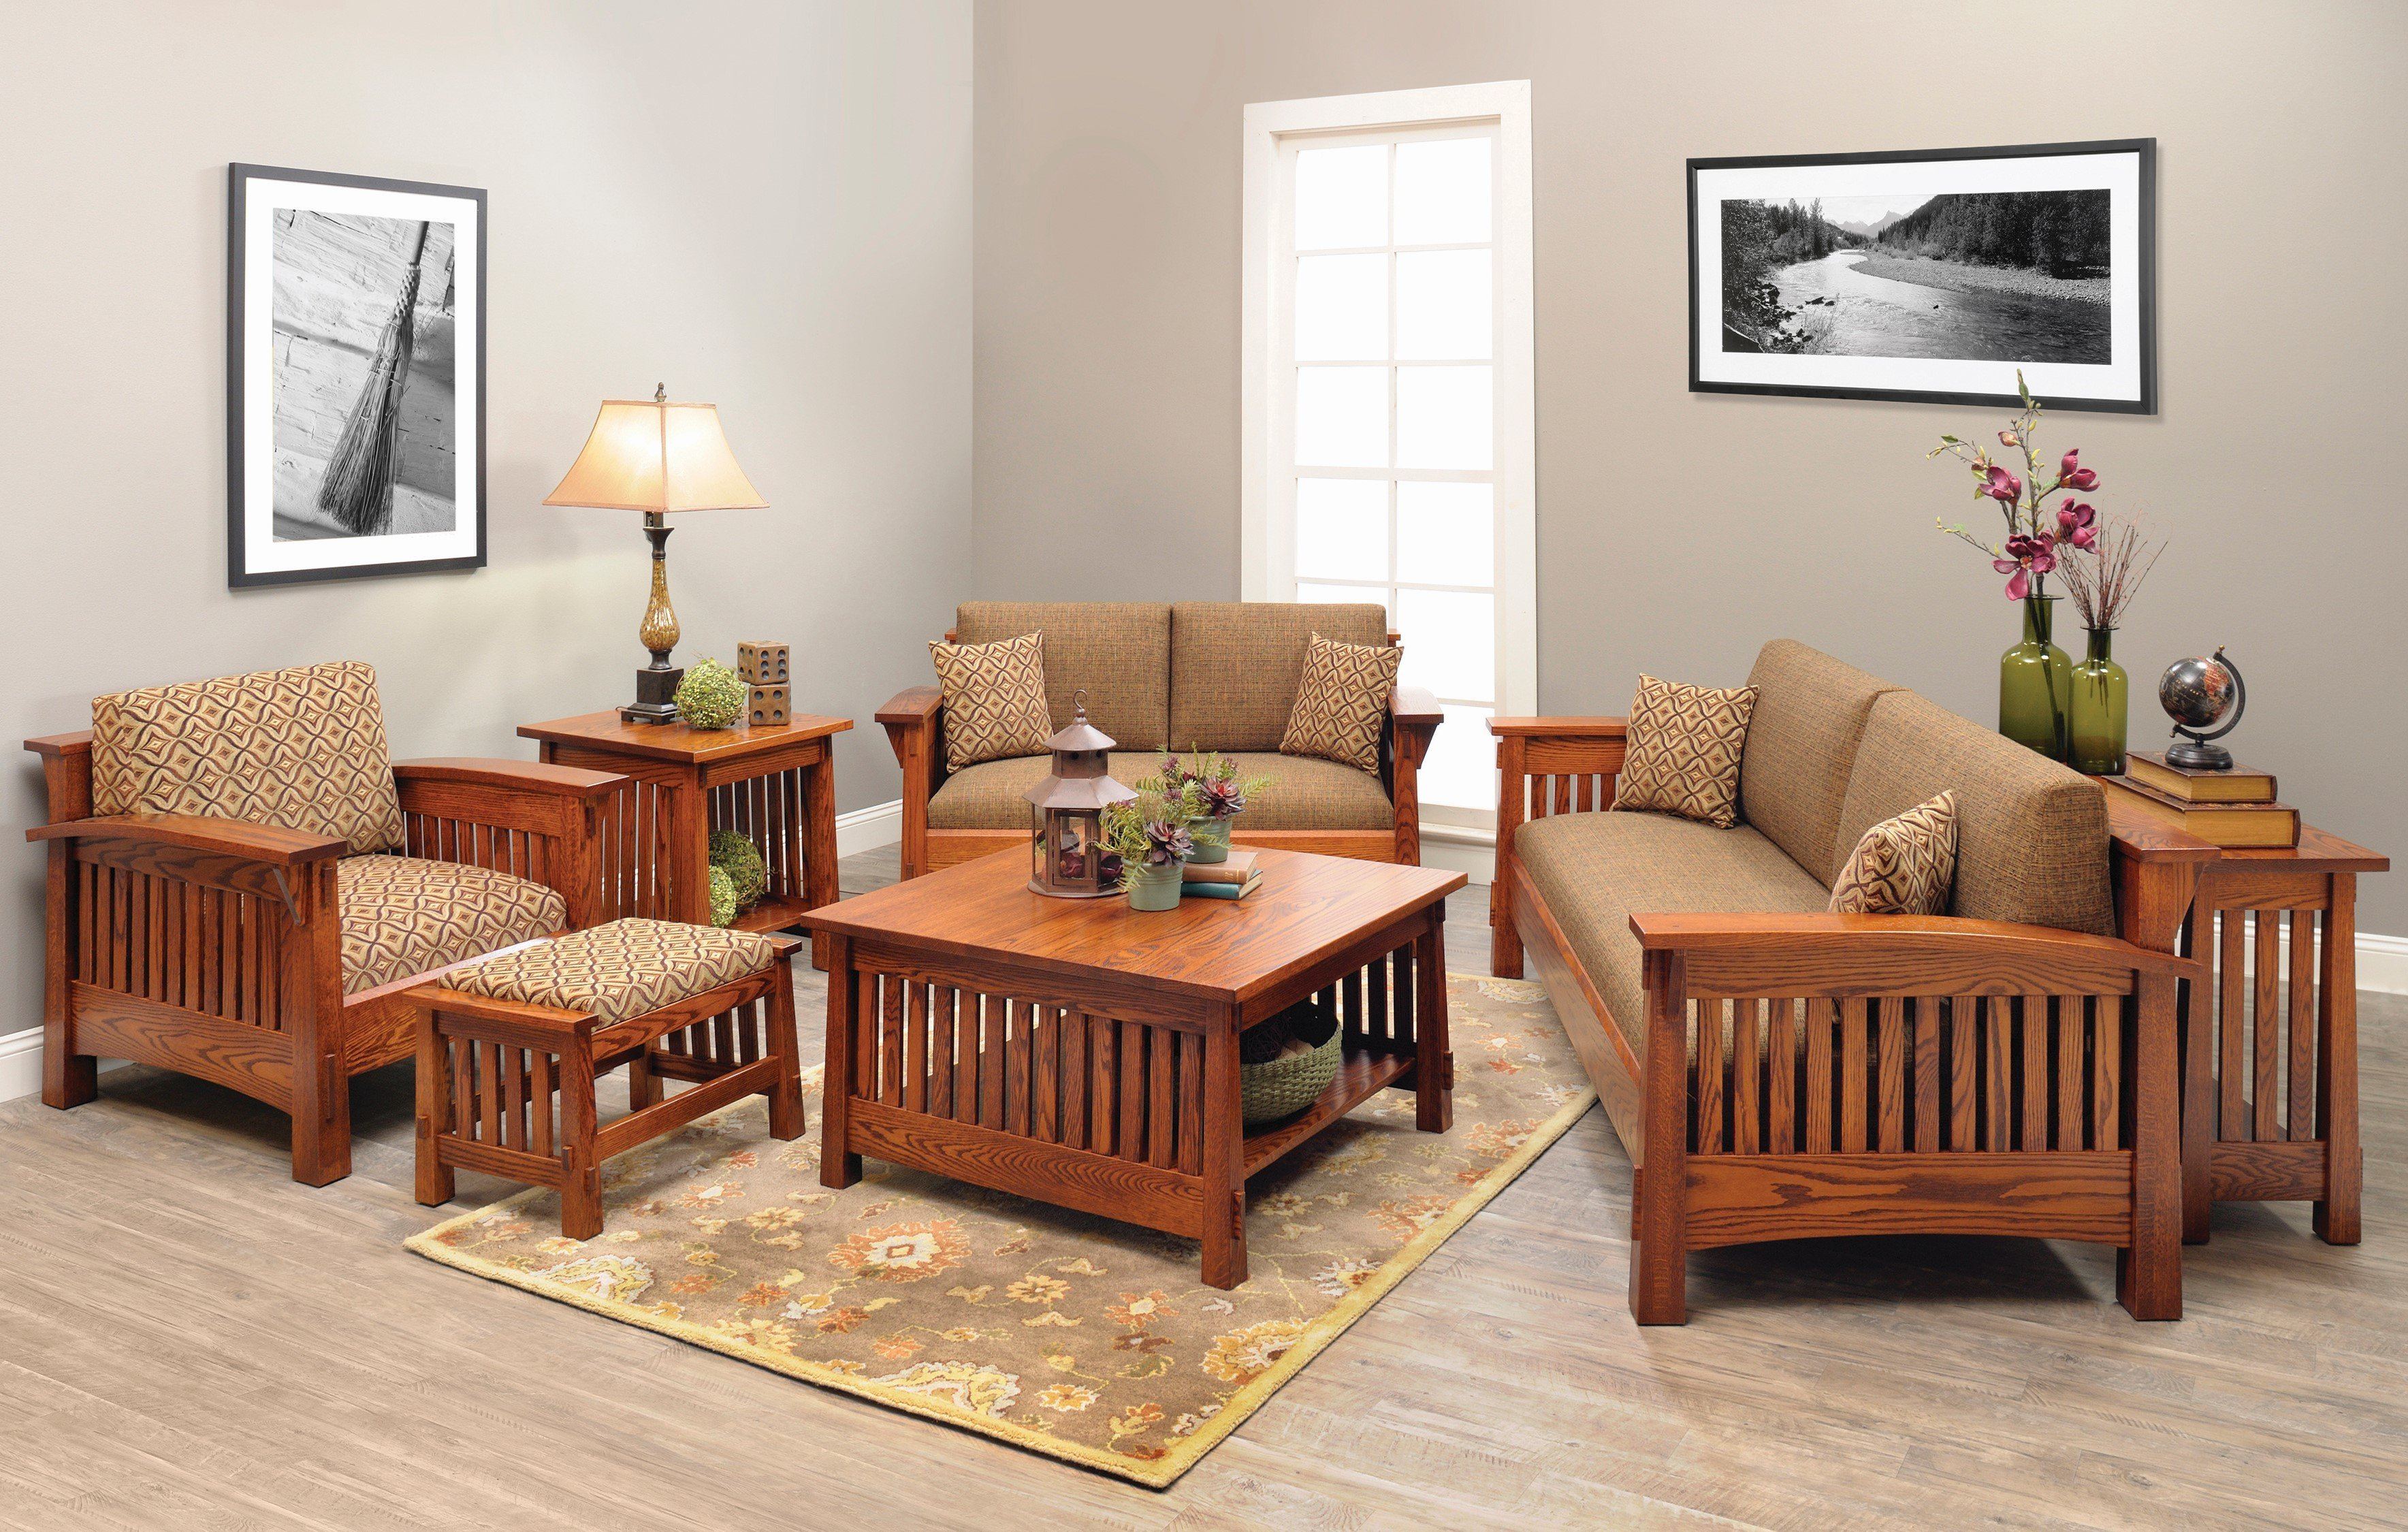 Shop the look - Countryside Mission Living Room Set